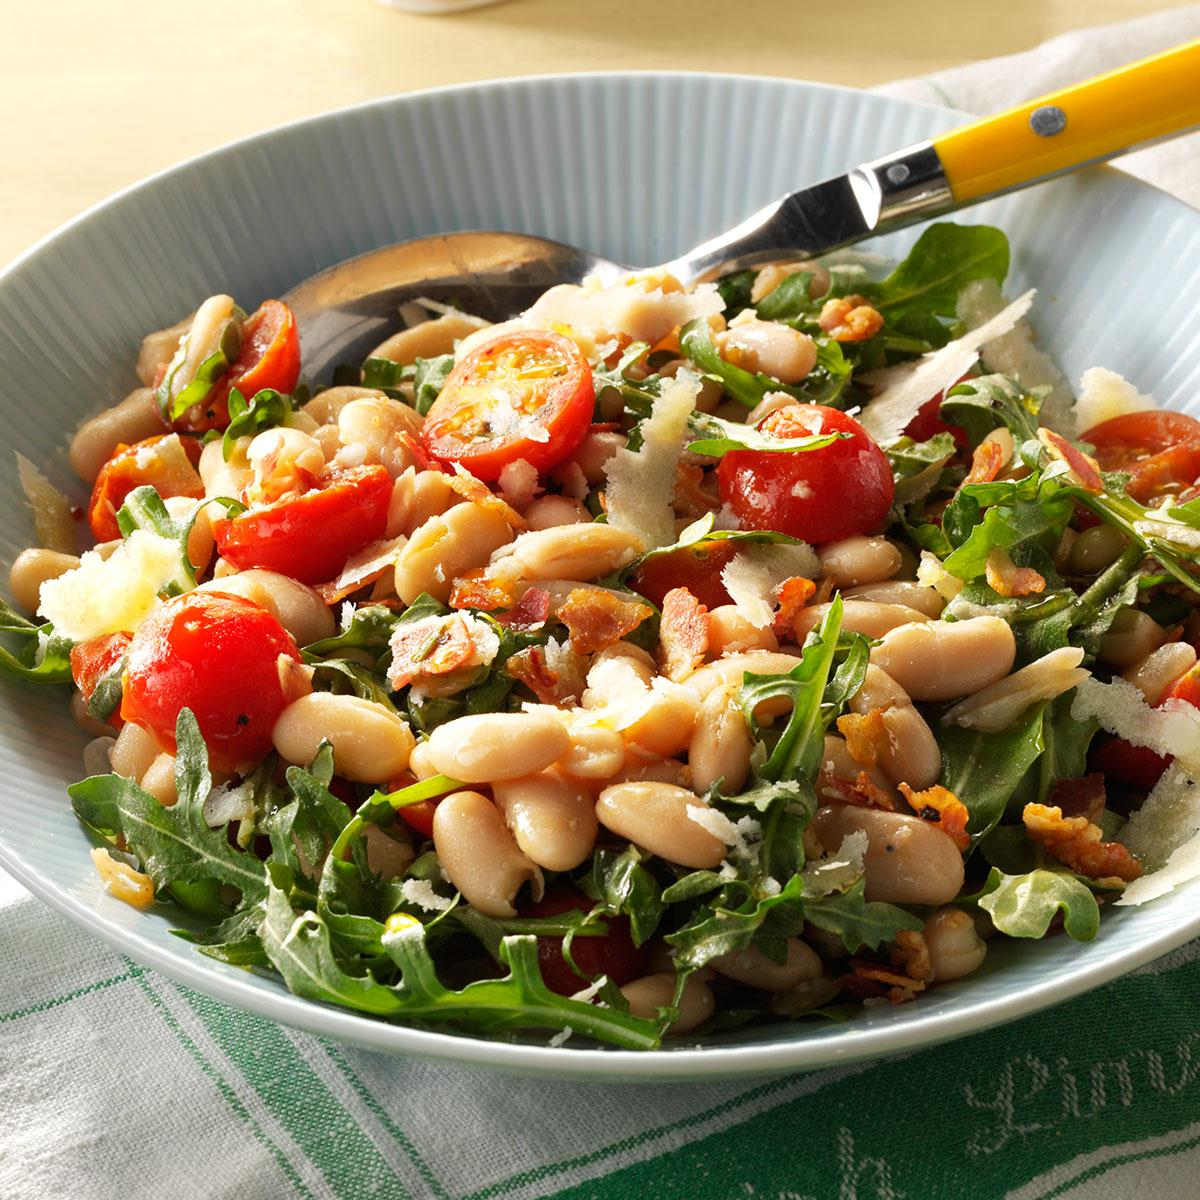 Forum on this topic: White Beans, Sausage and Arugula, white-beans-sausage-and-arugula/